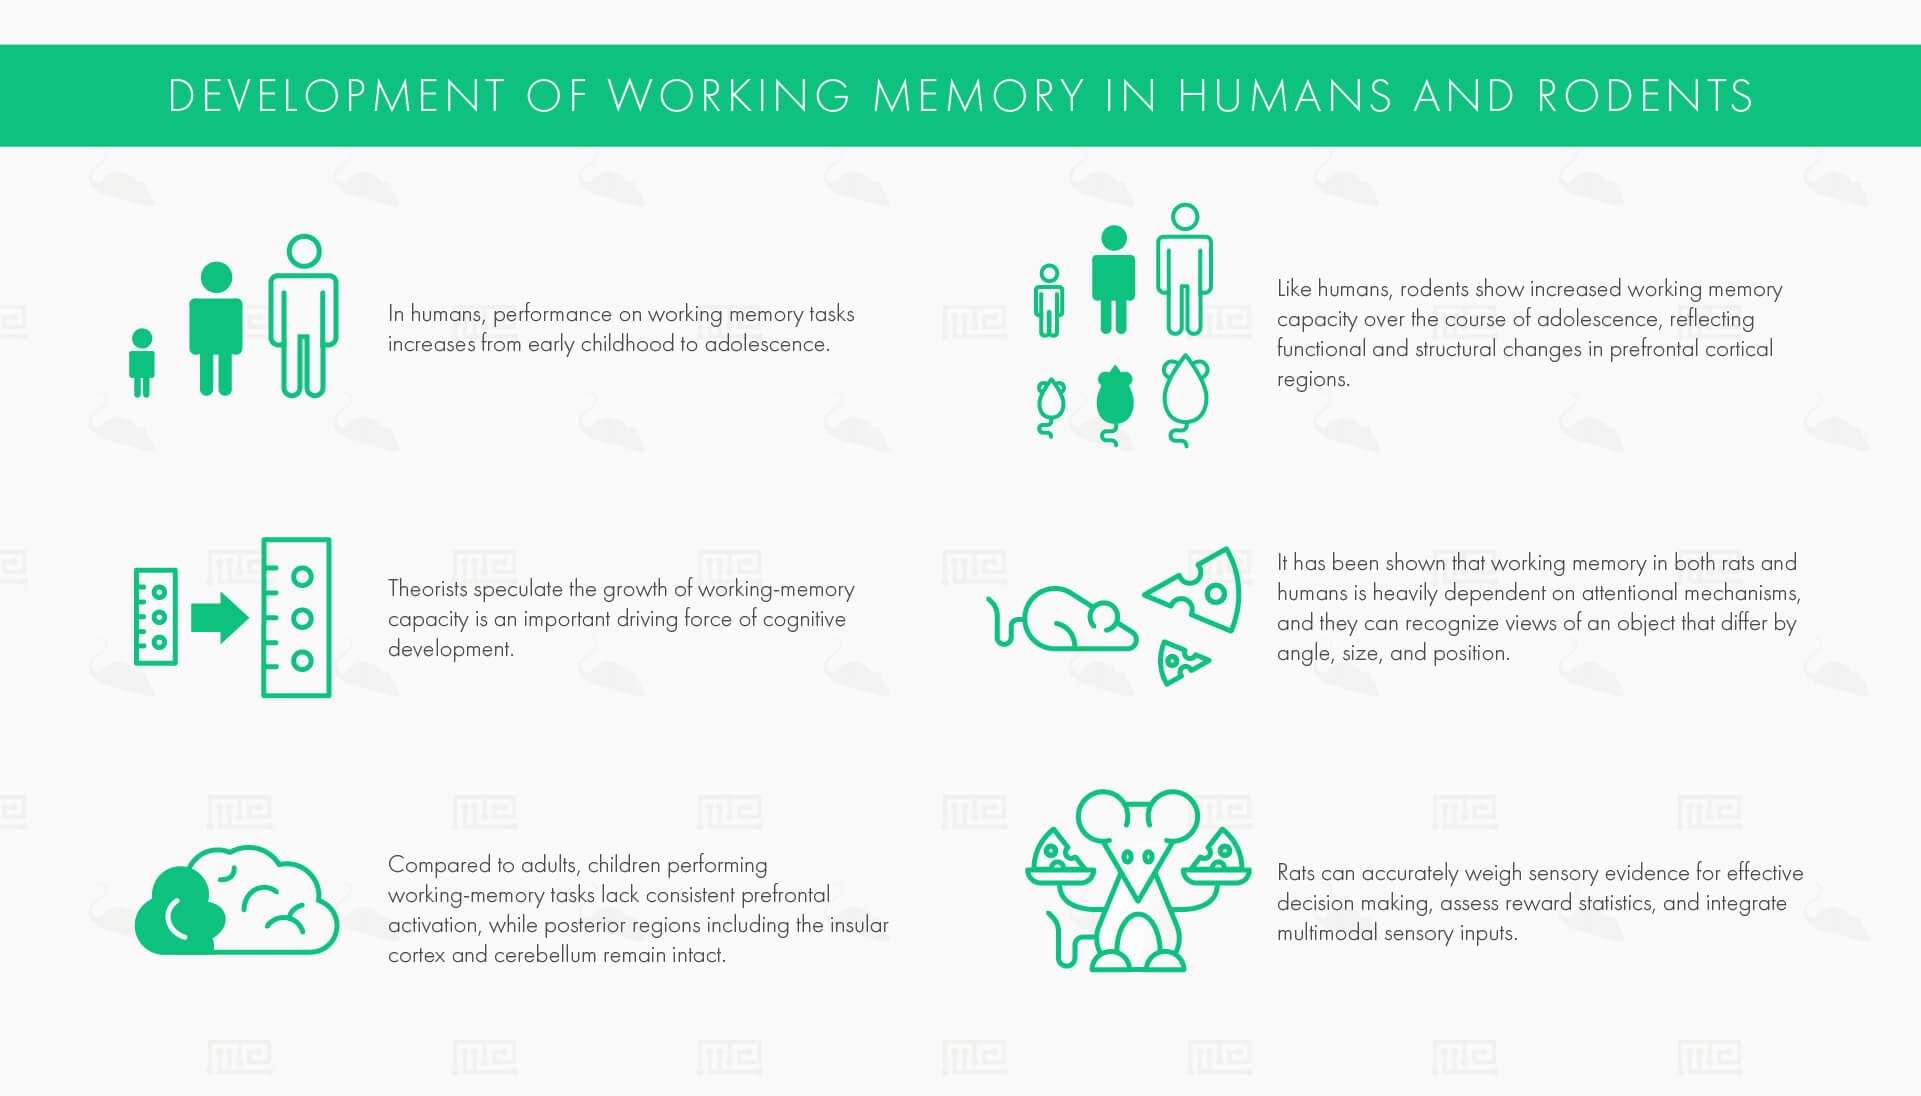 Development of Working Memory in Humans and Rodents